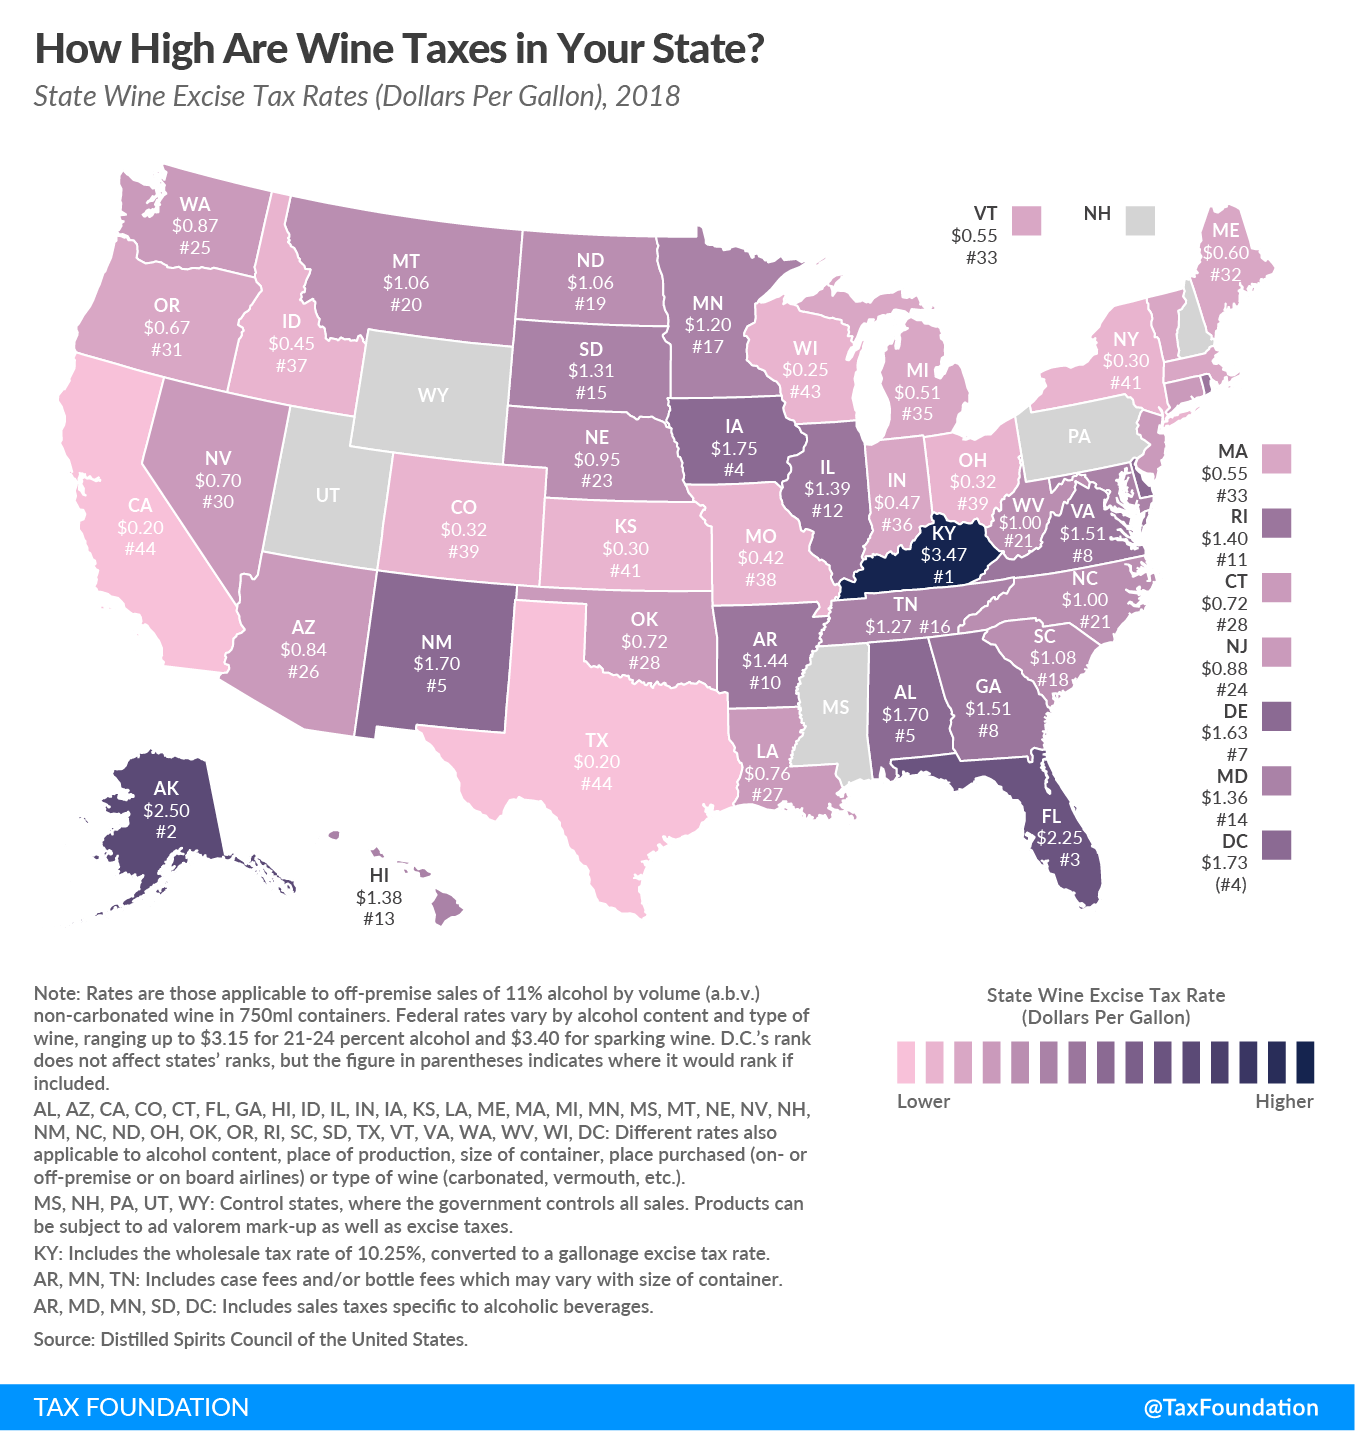 How high are wine taxes in your state? 2018